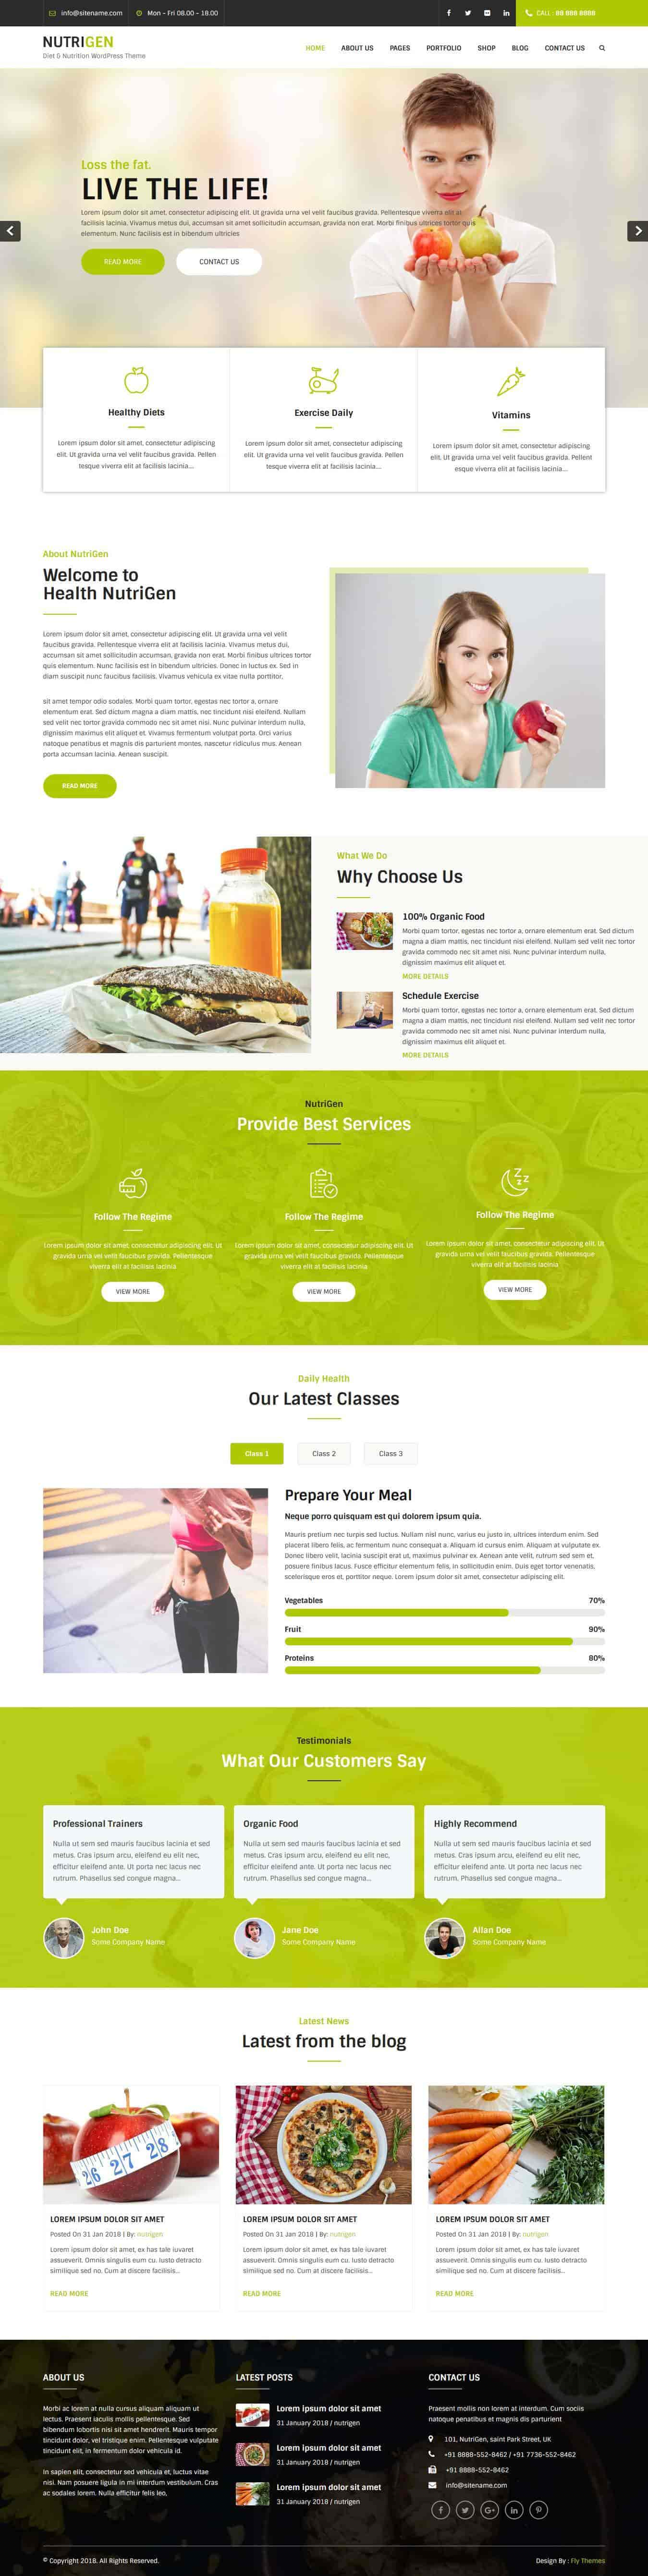 diet and nutrition WordPress theme